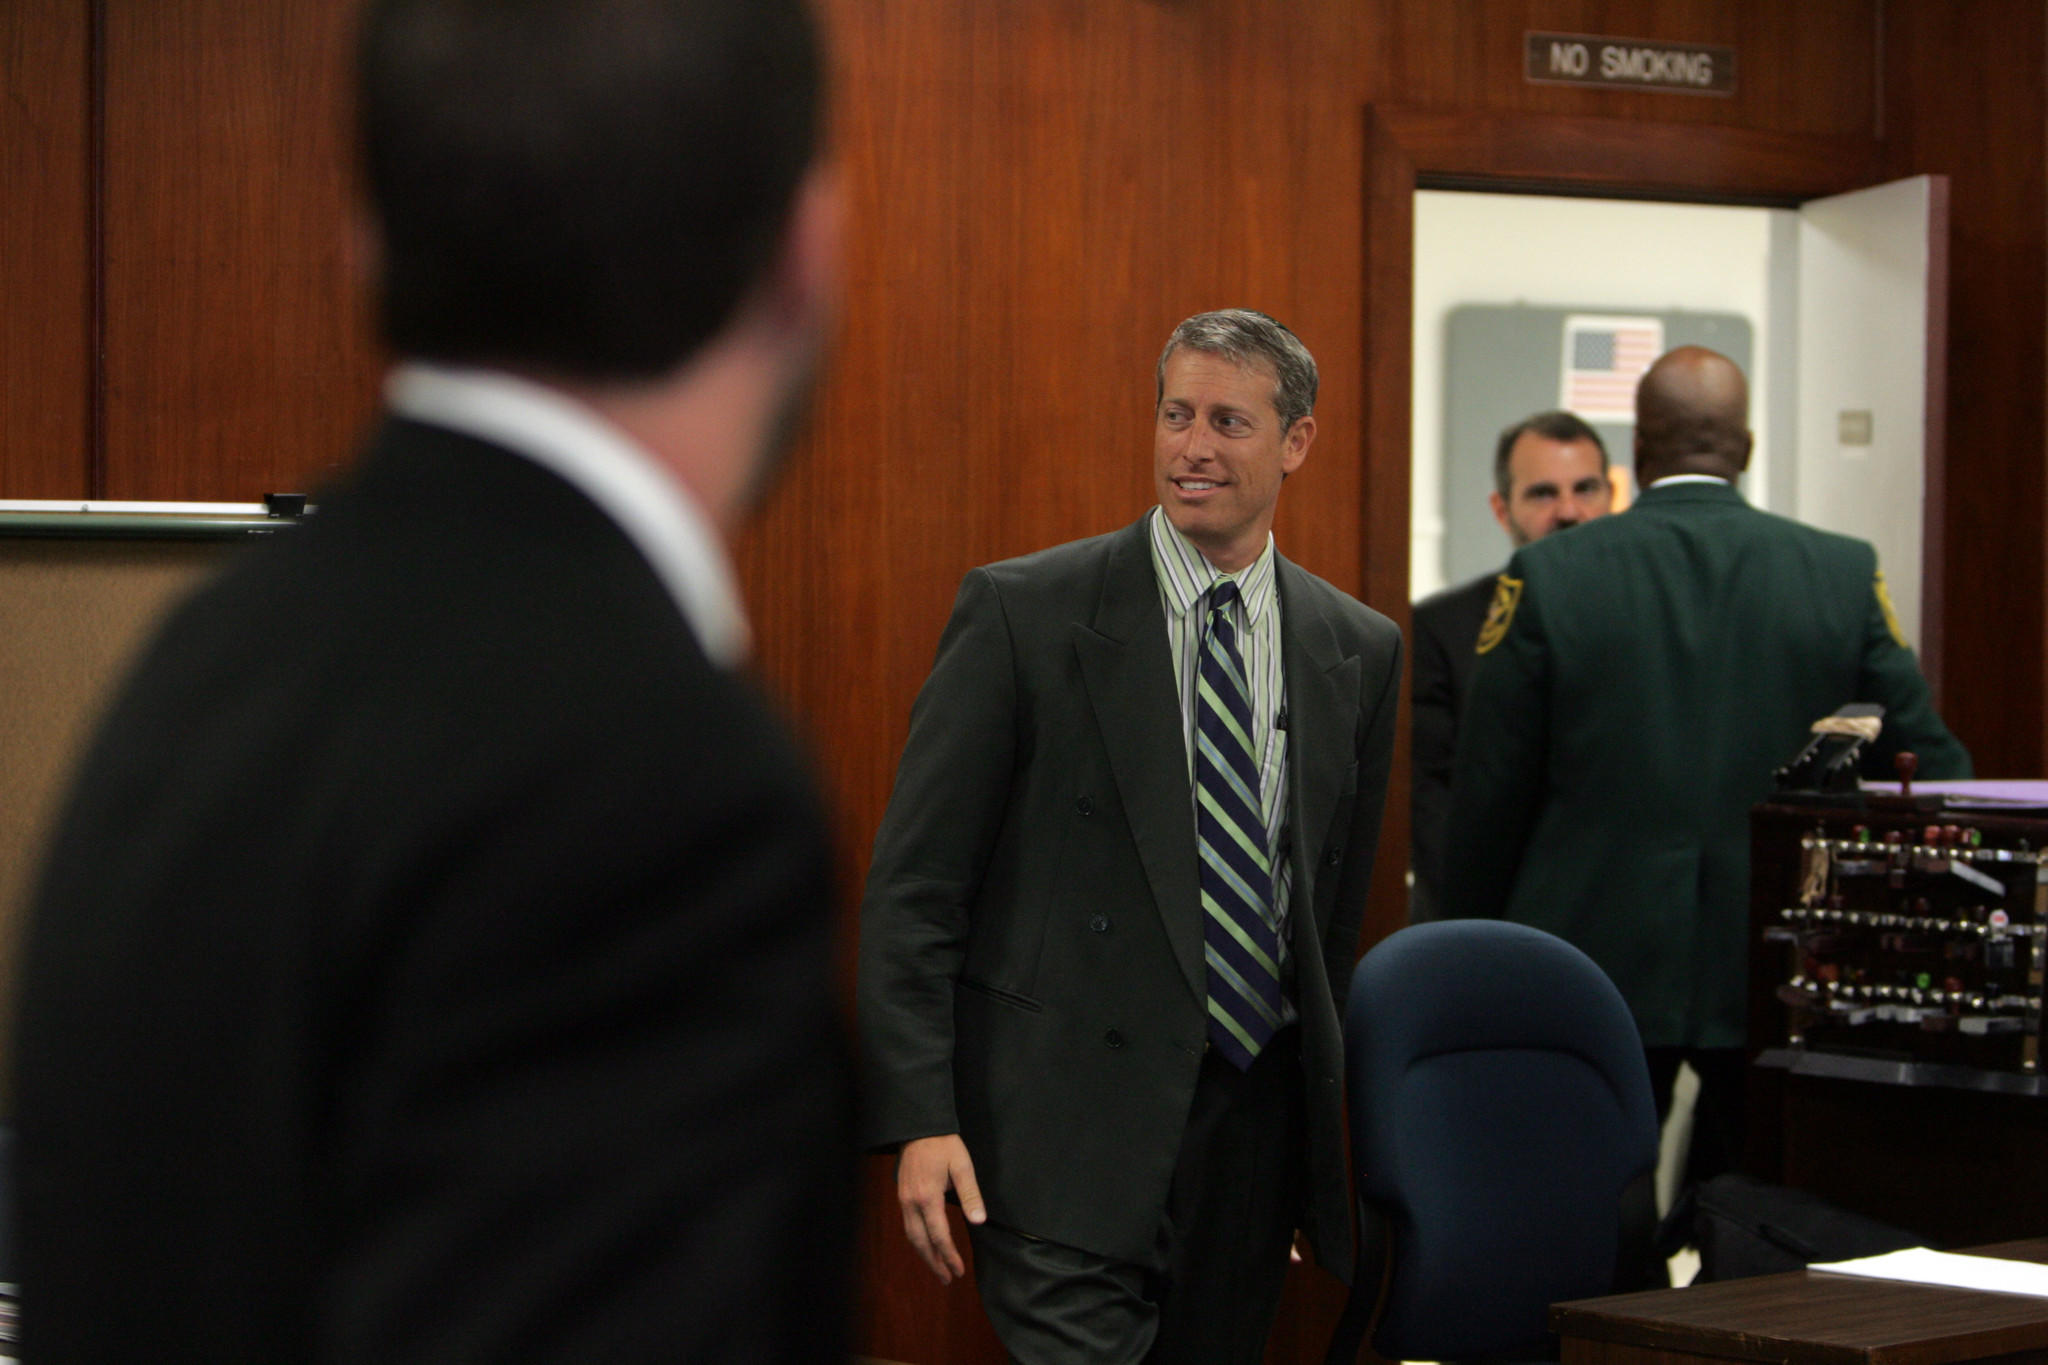 Keith Wasserstrom walks into court just before a jury reads the verdict in his case in 2007.